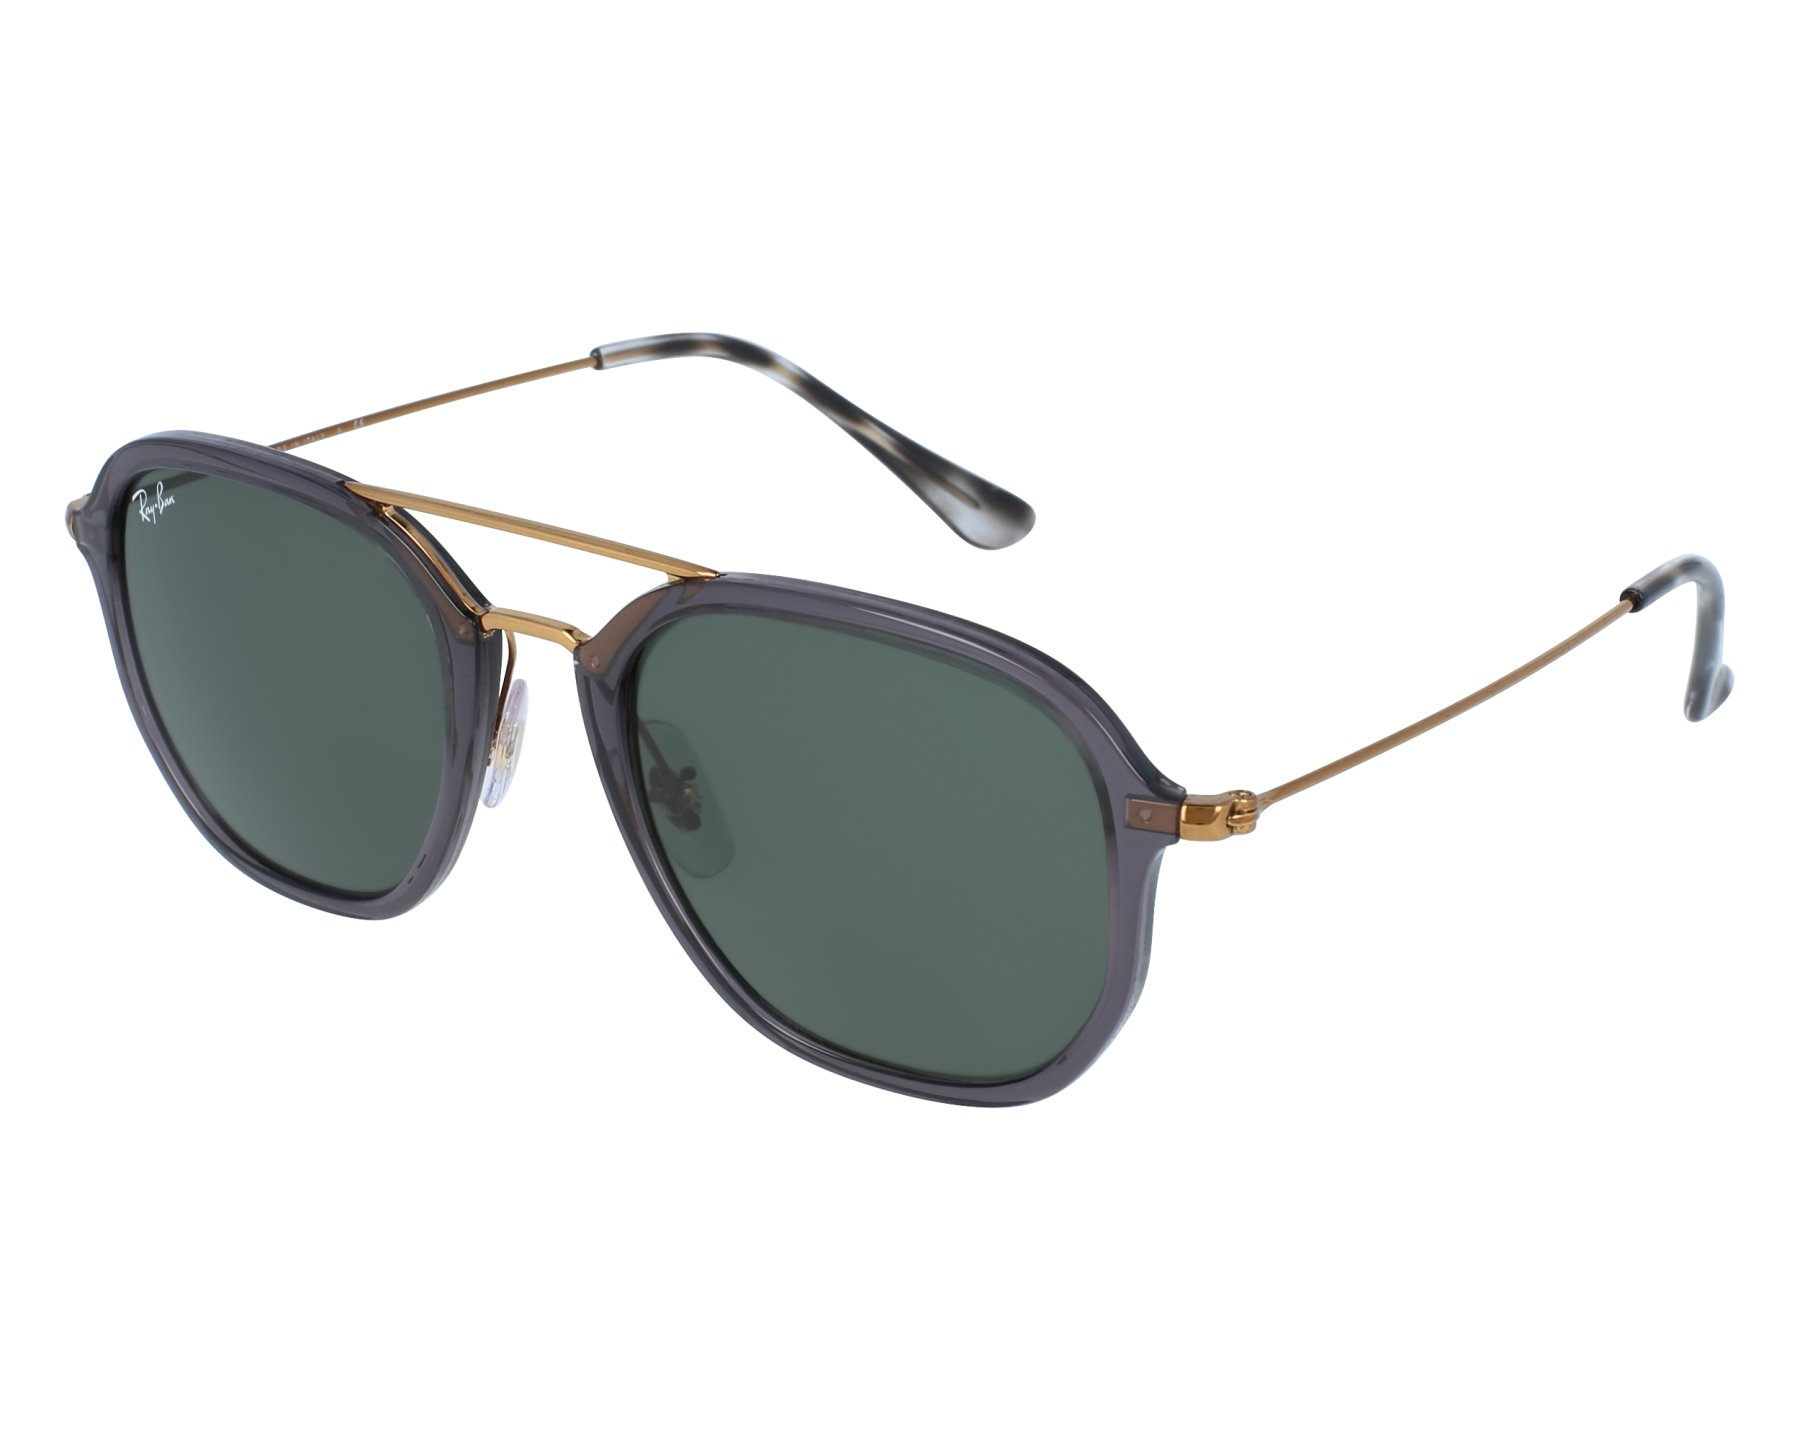 28efcc17fa Sunglasses Ray-Ban RB-4273 6237 52-21 Black Gold front view